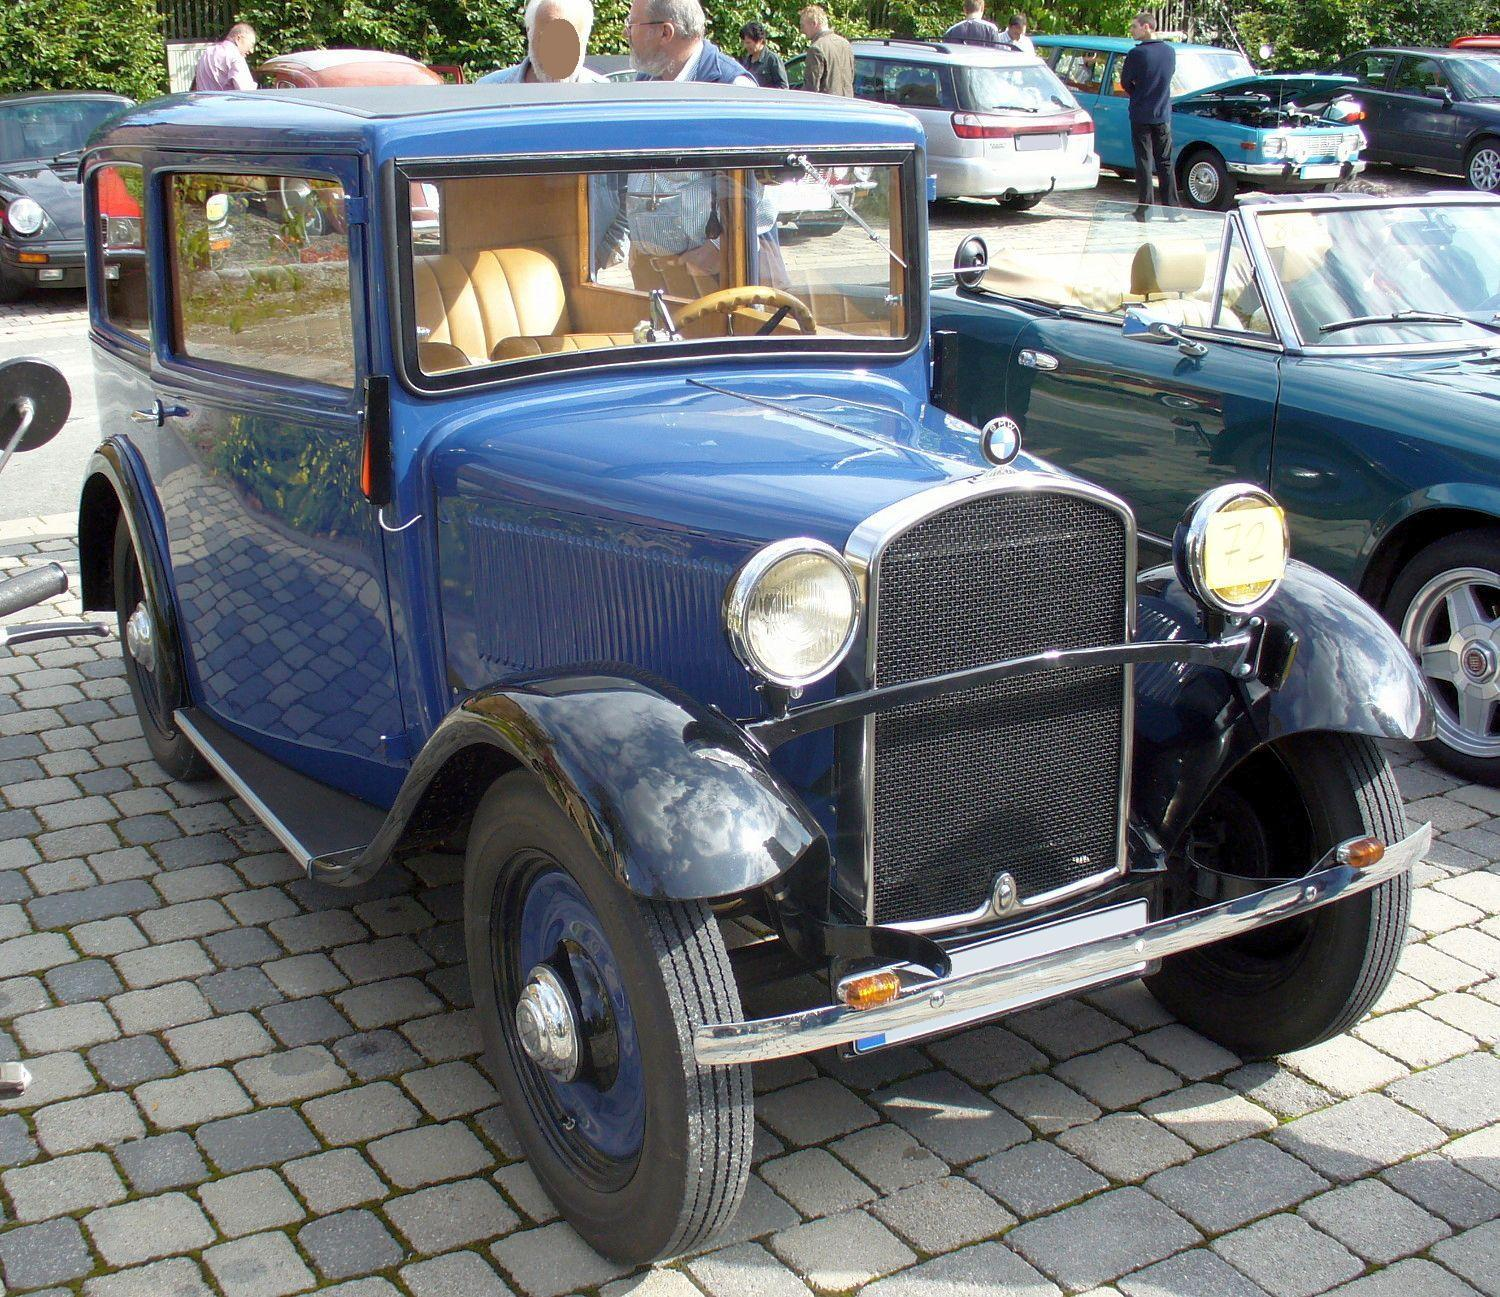 1932 BMW 3/20 PS Wallpapers   SuperCars.net - Today's Automotive News